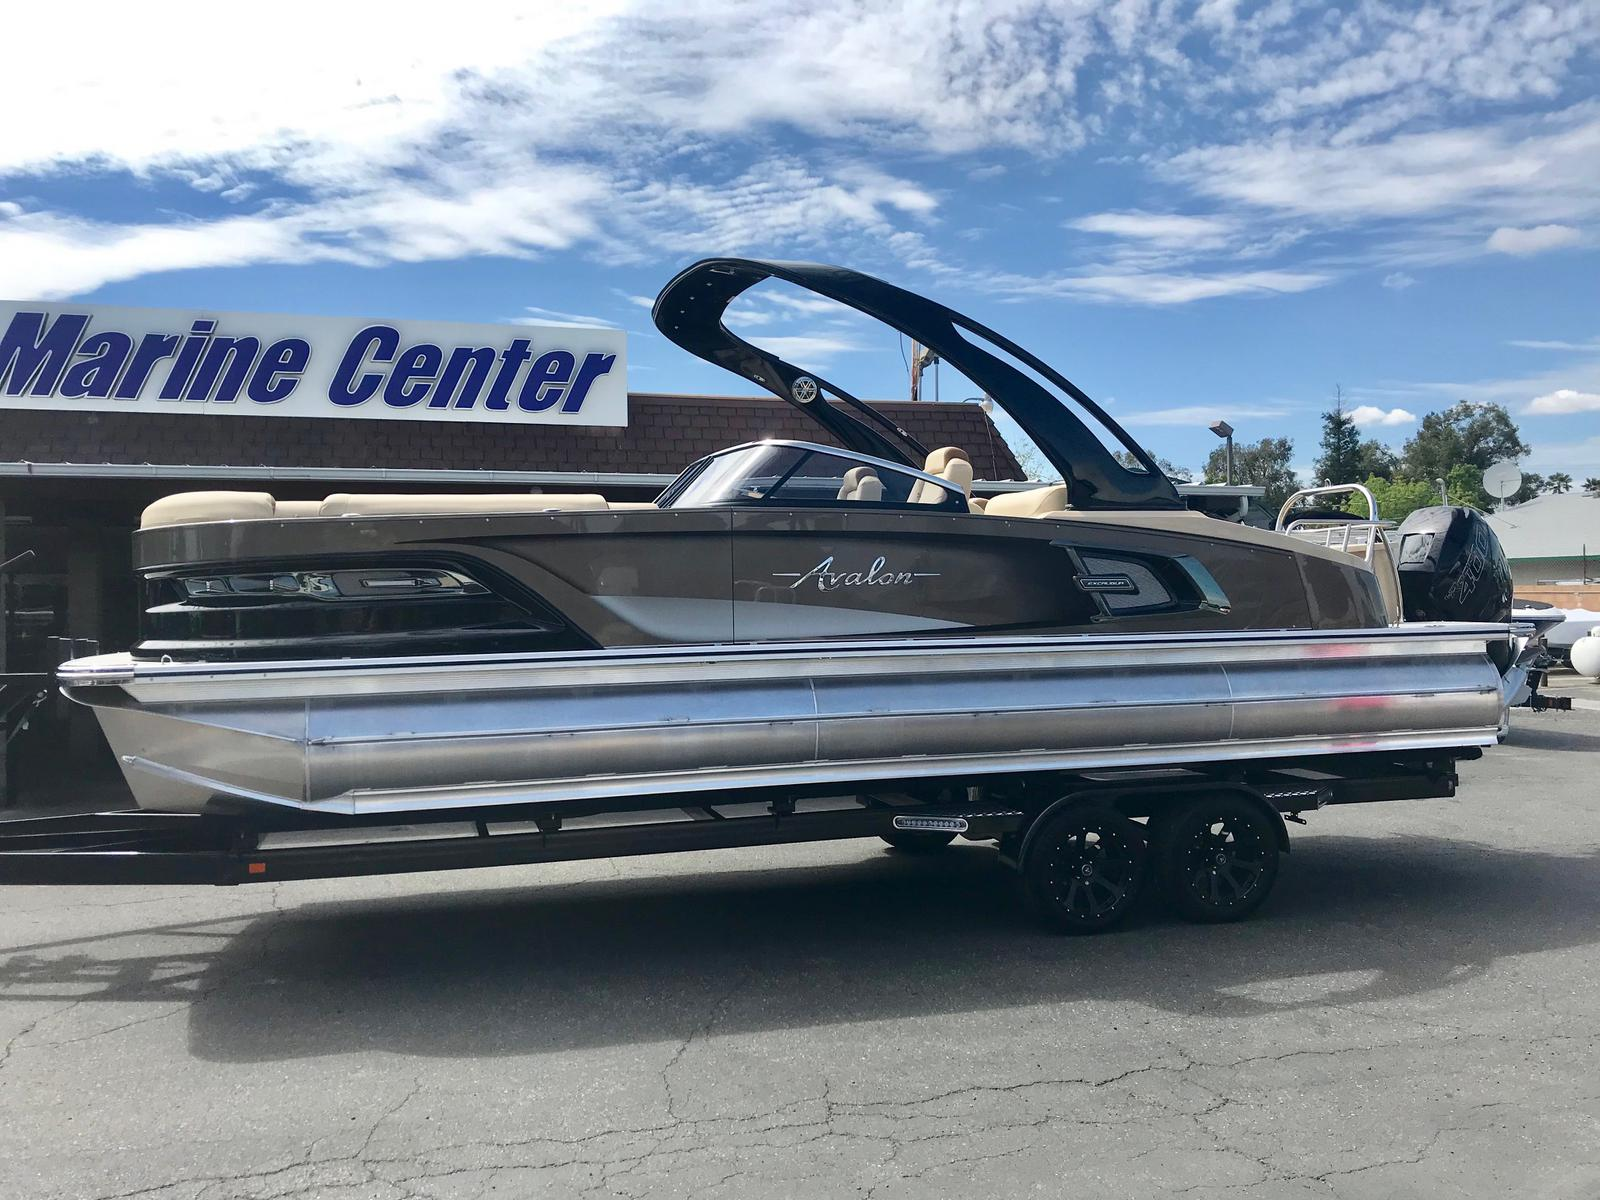 Avalon Excalibur 27' Rear Lounge Windshield w/ 400HP Racing Mercury!